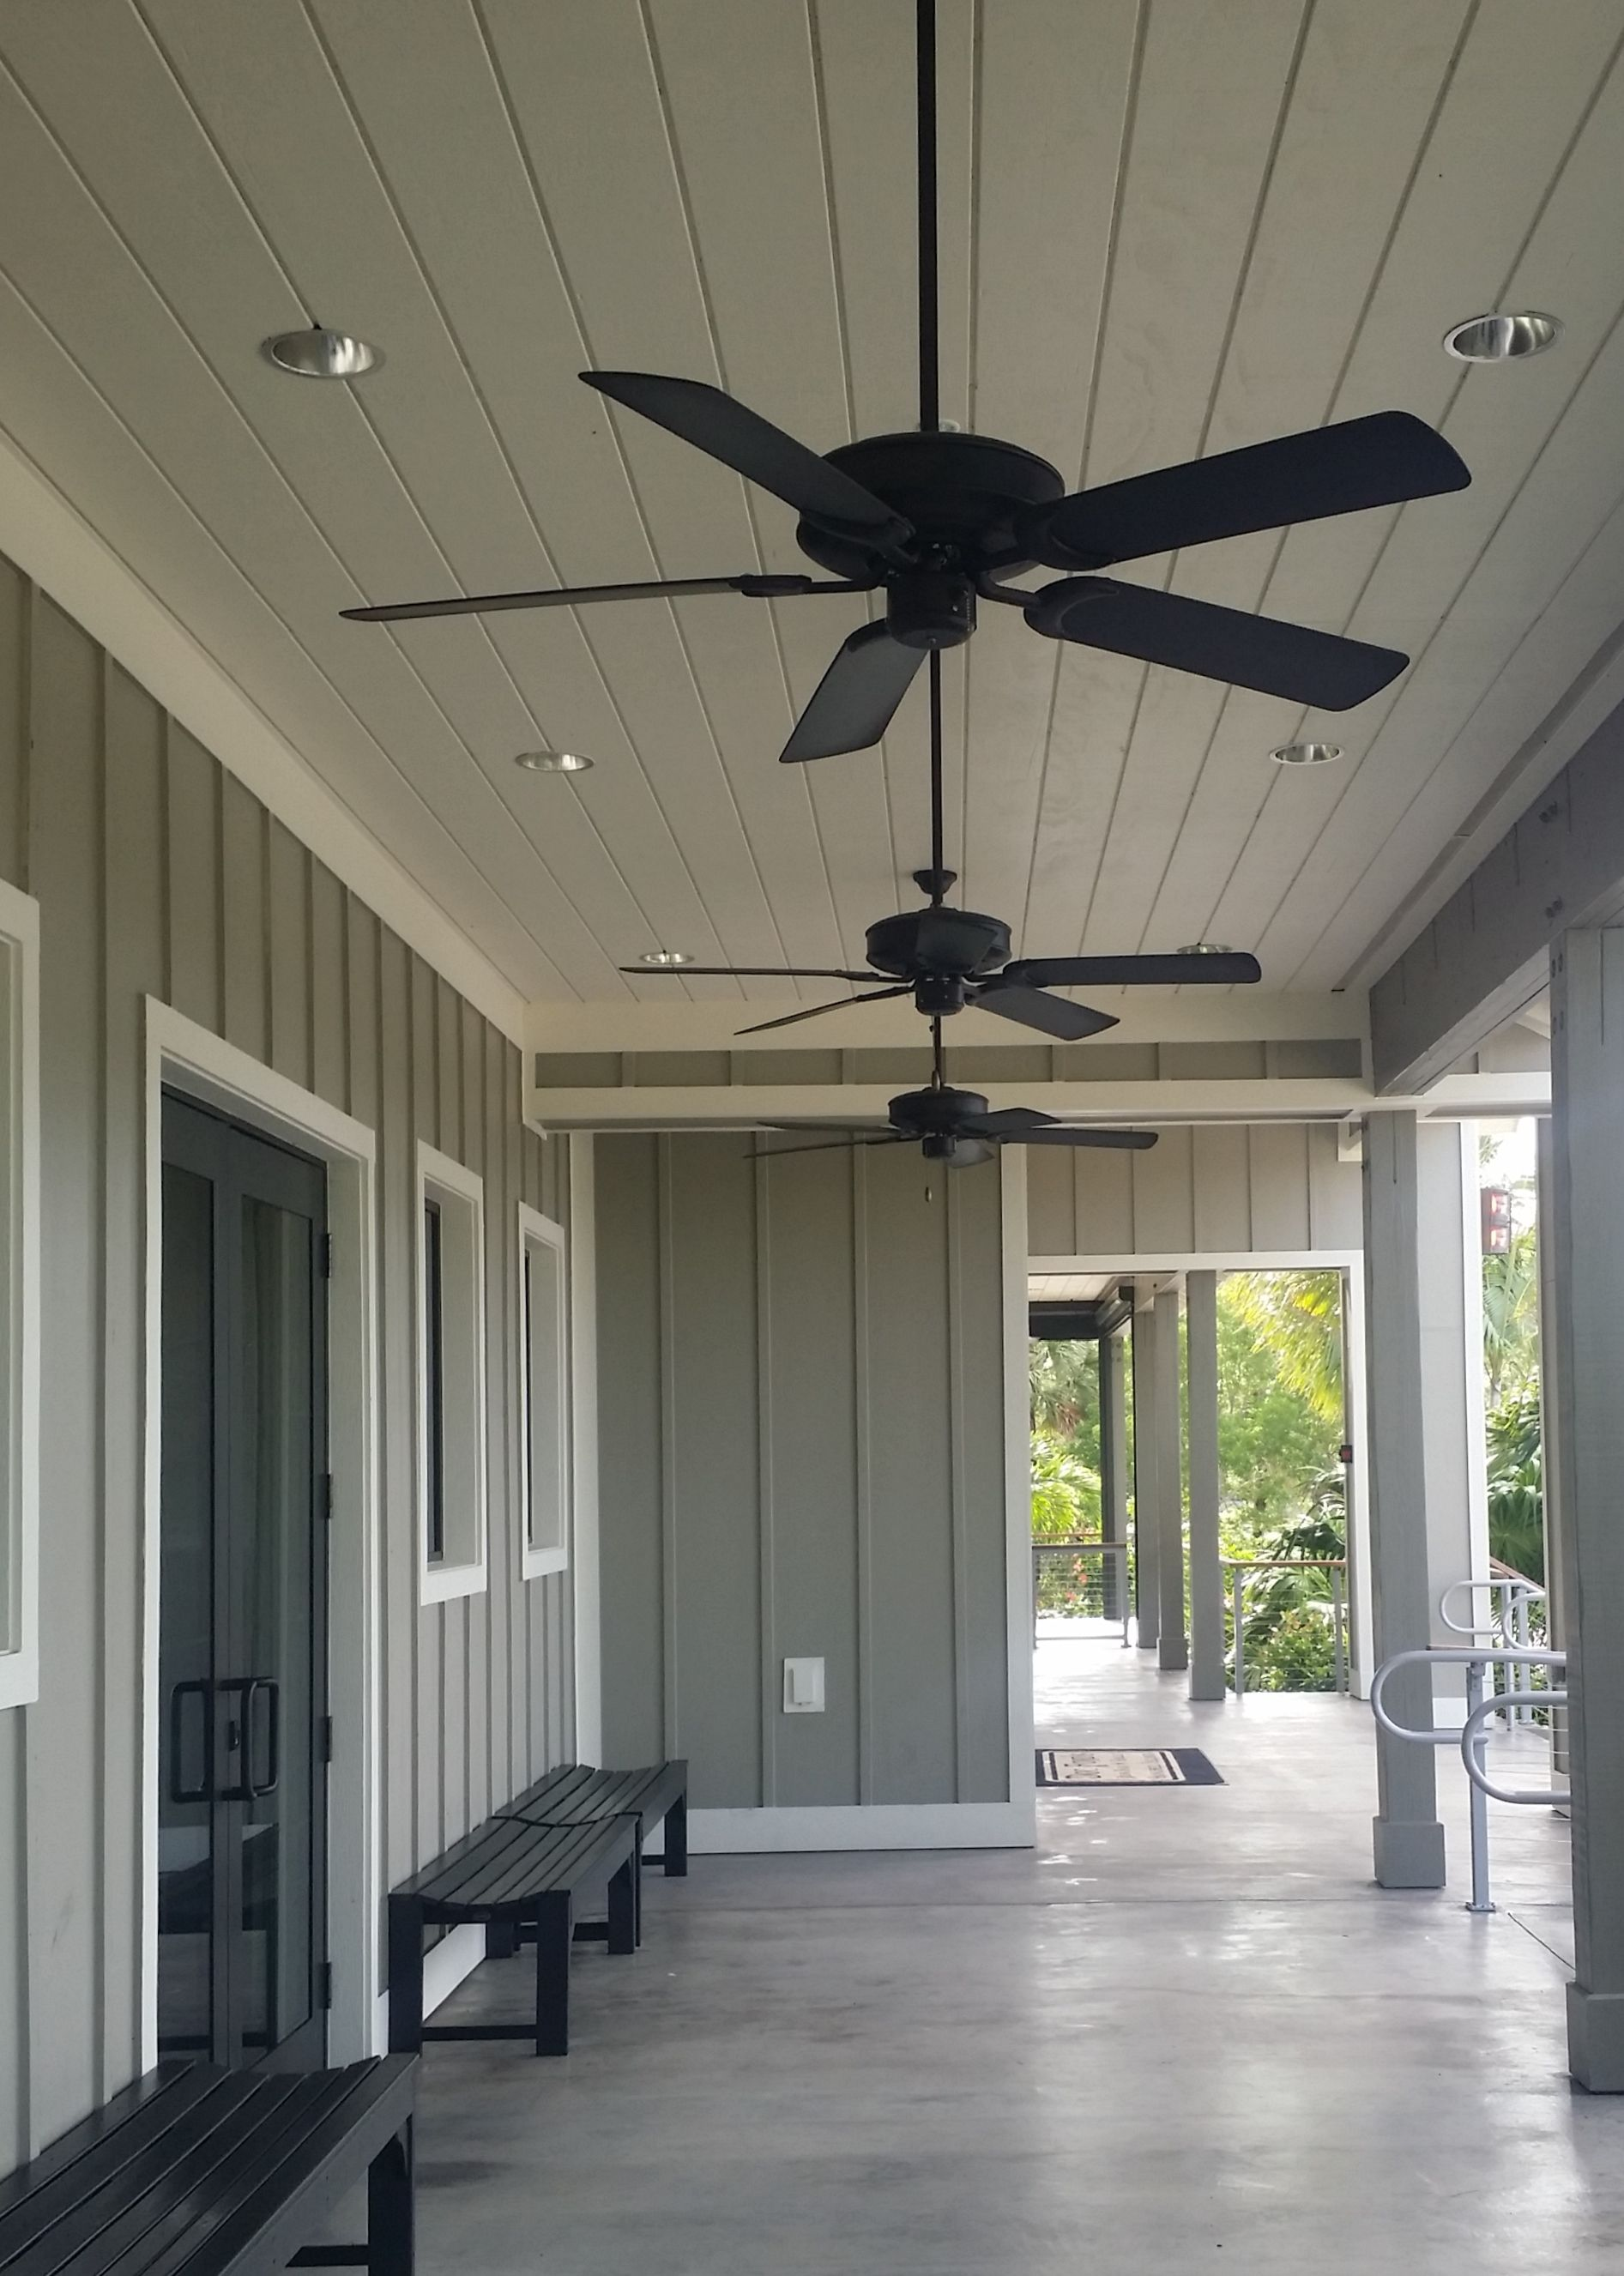 T1 11 Ceiling And Board And Batten Walls Ranch House Exterior